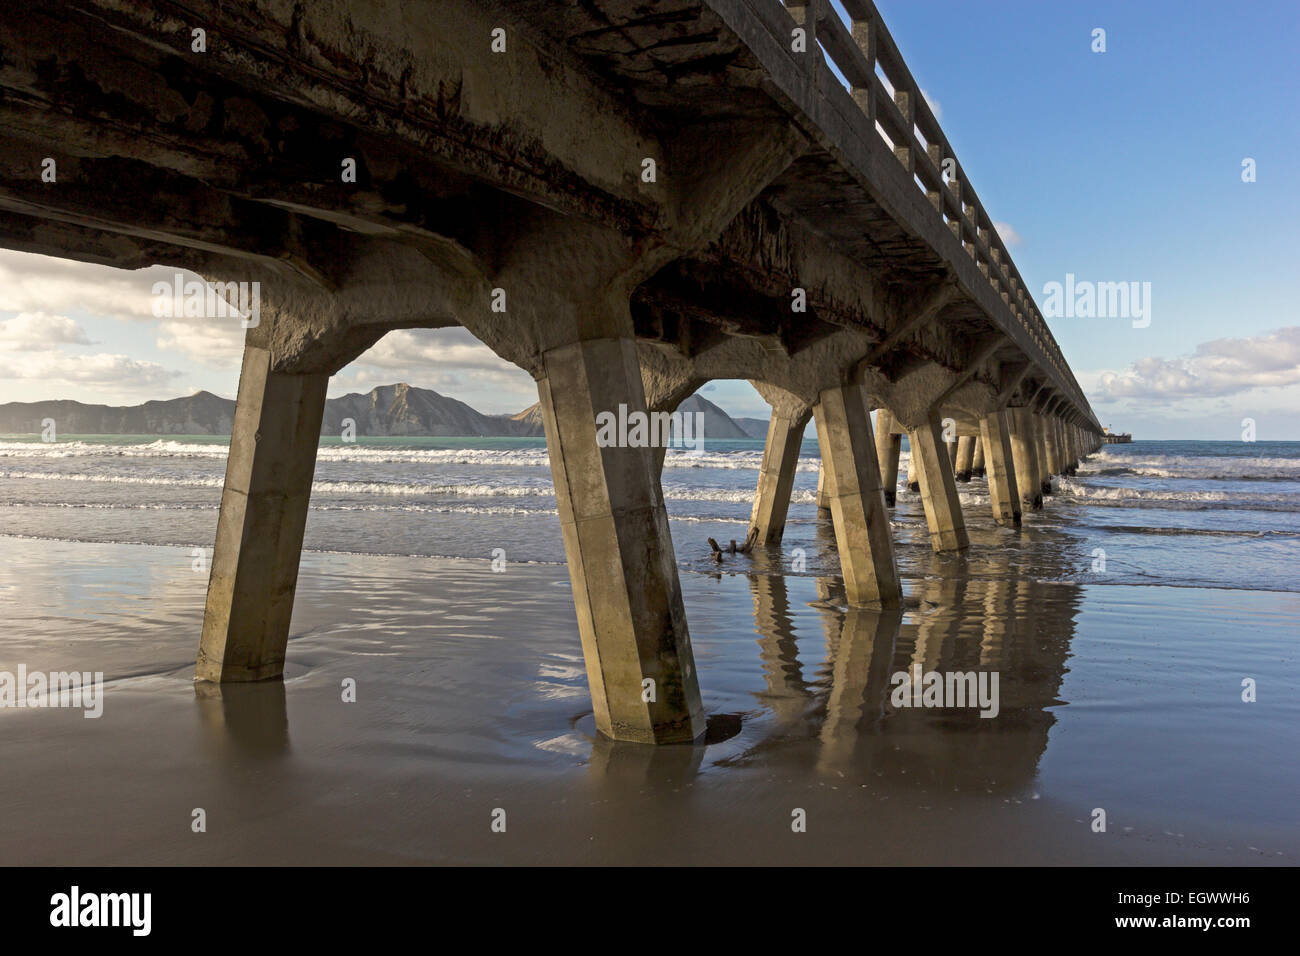 Pier in Tolaga Bay in New Zealand - Stock Image